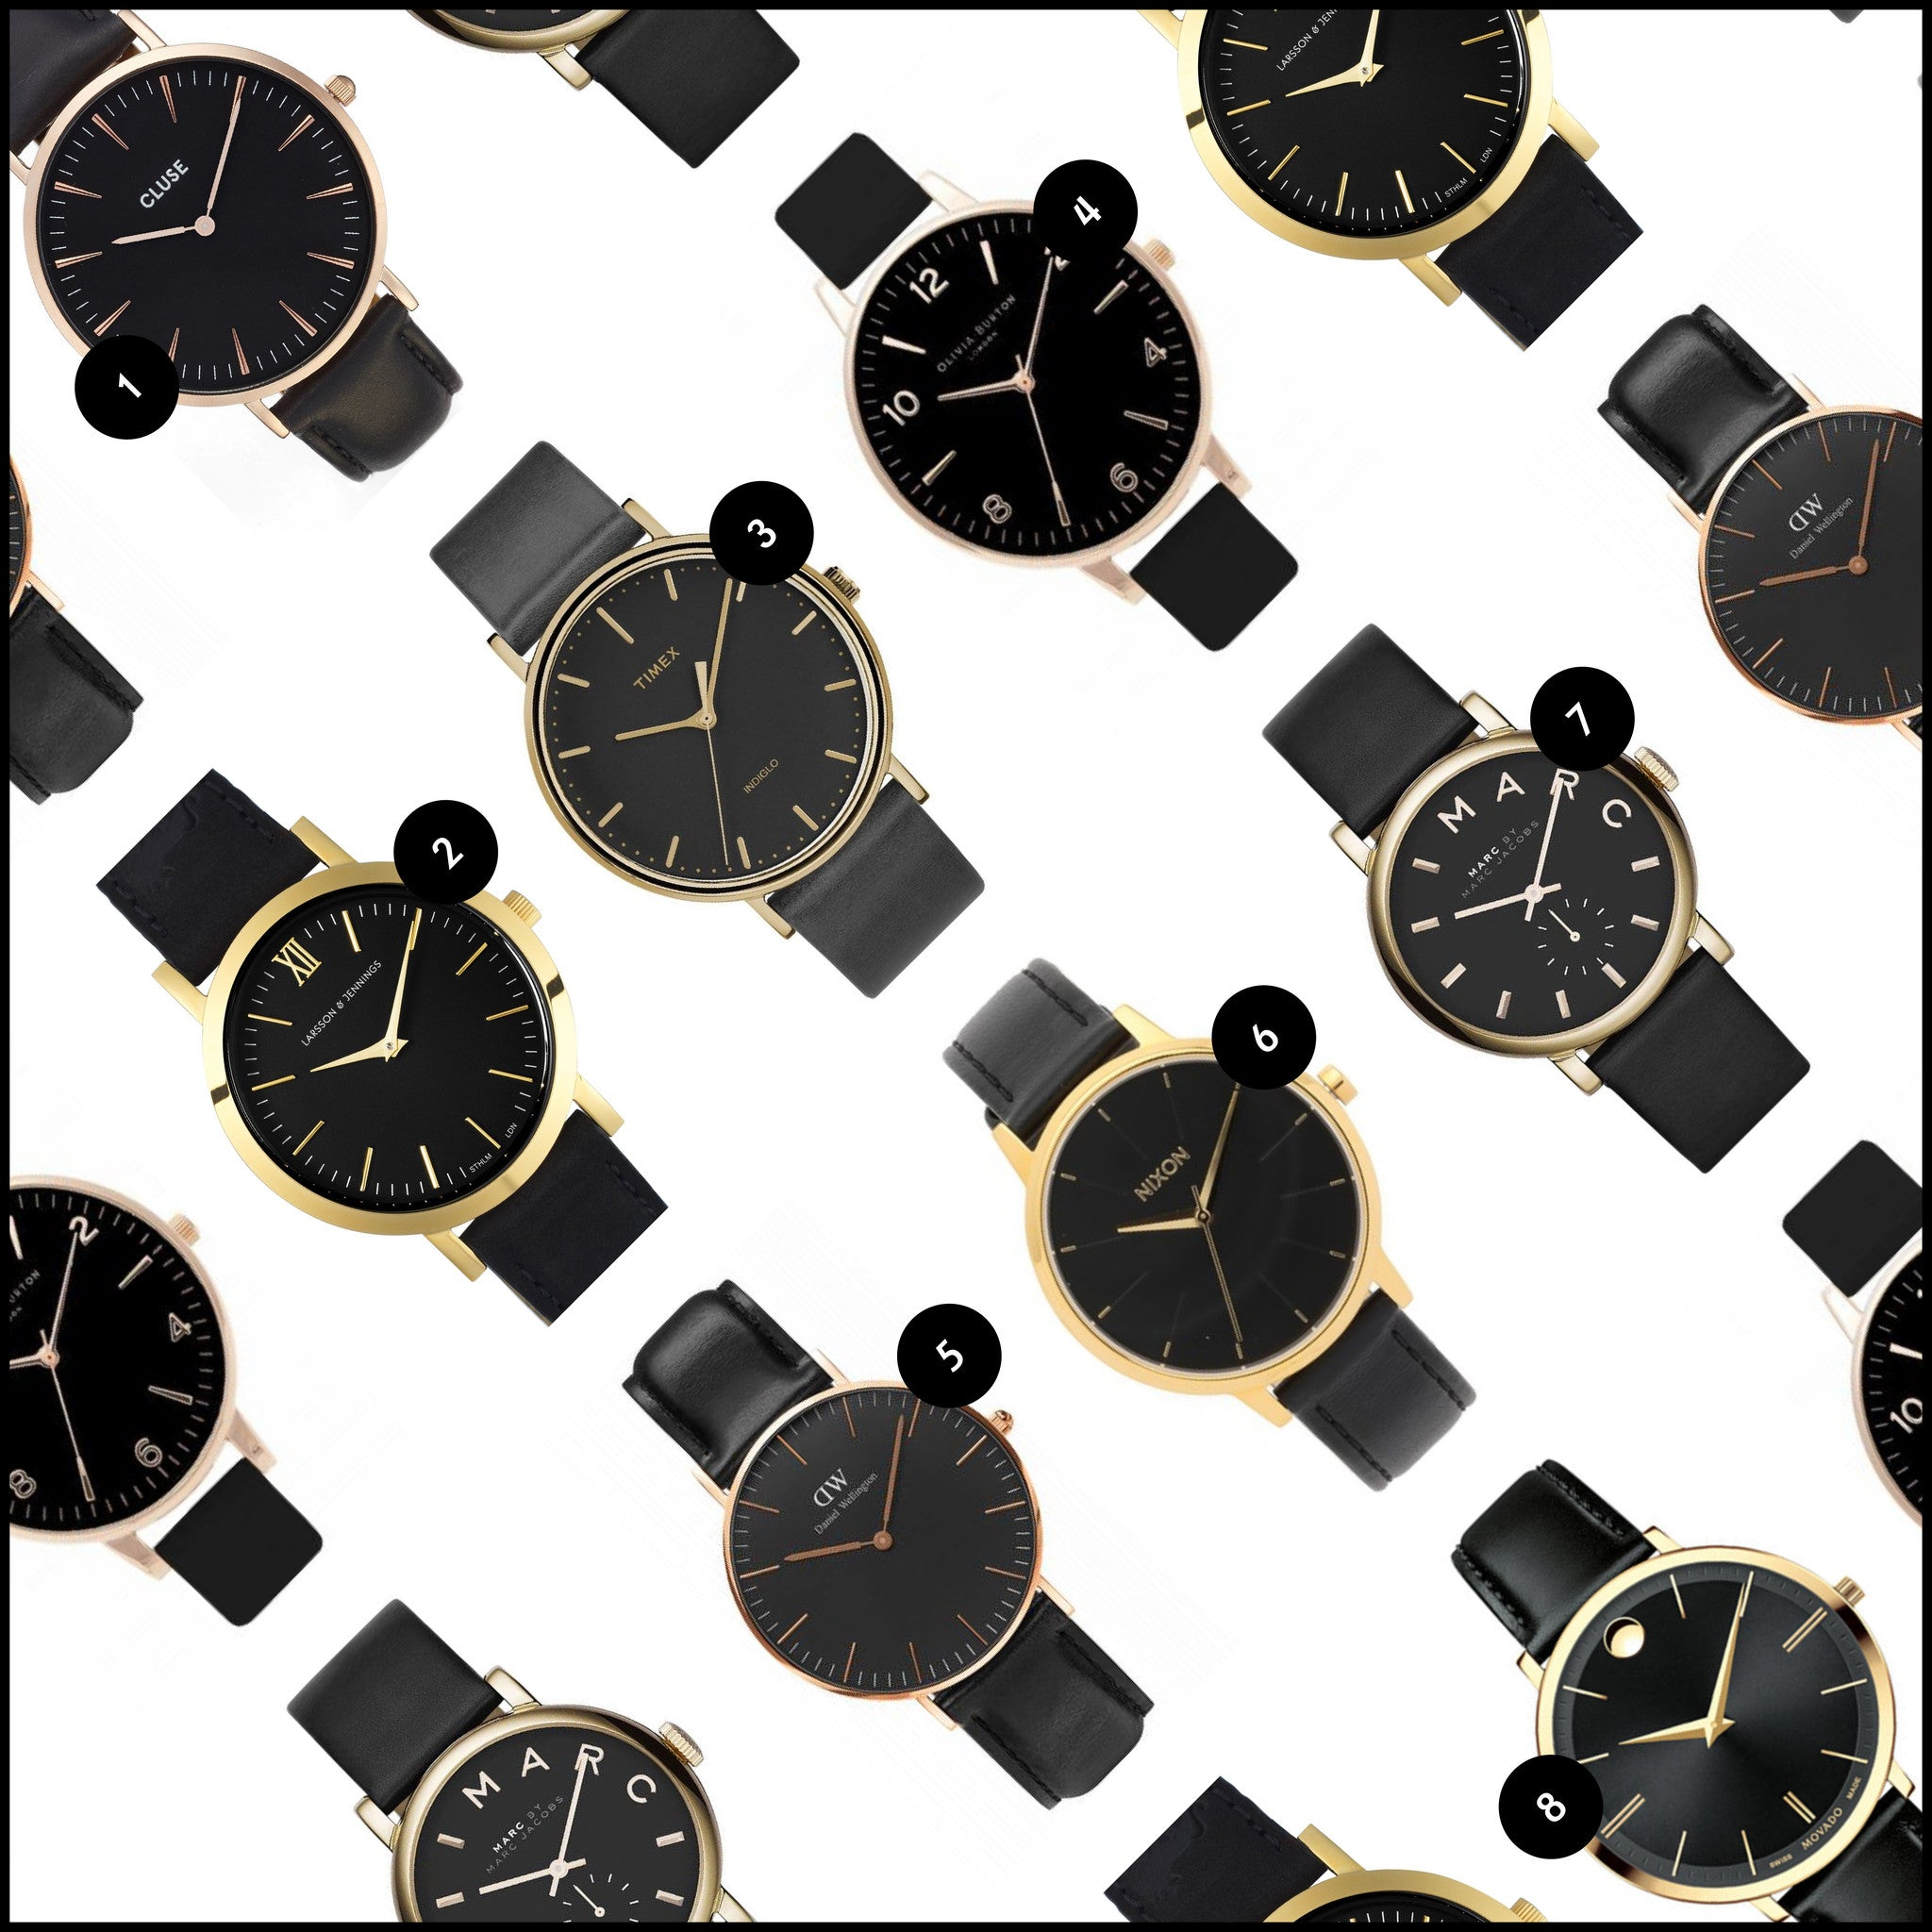 Black and Gold Watches | Of Mercer Blog